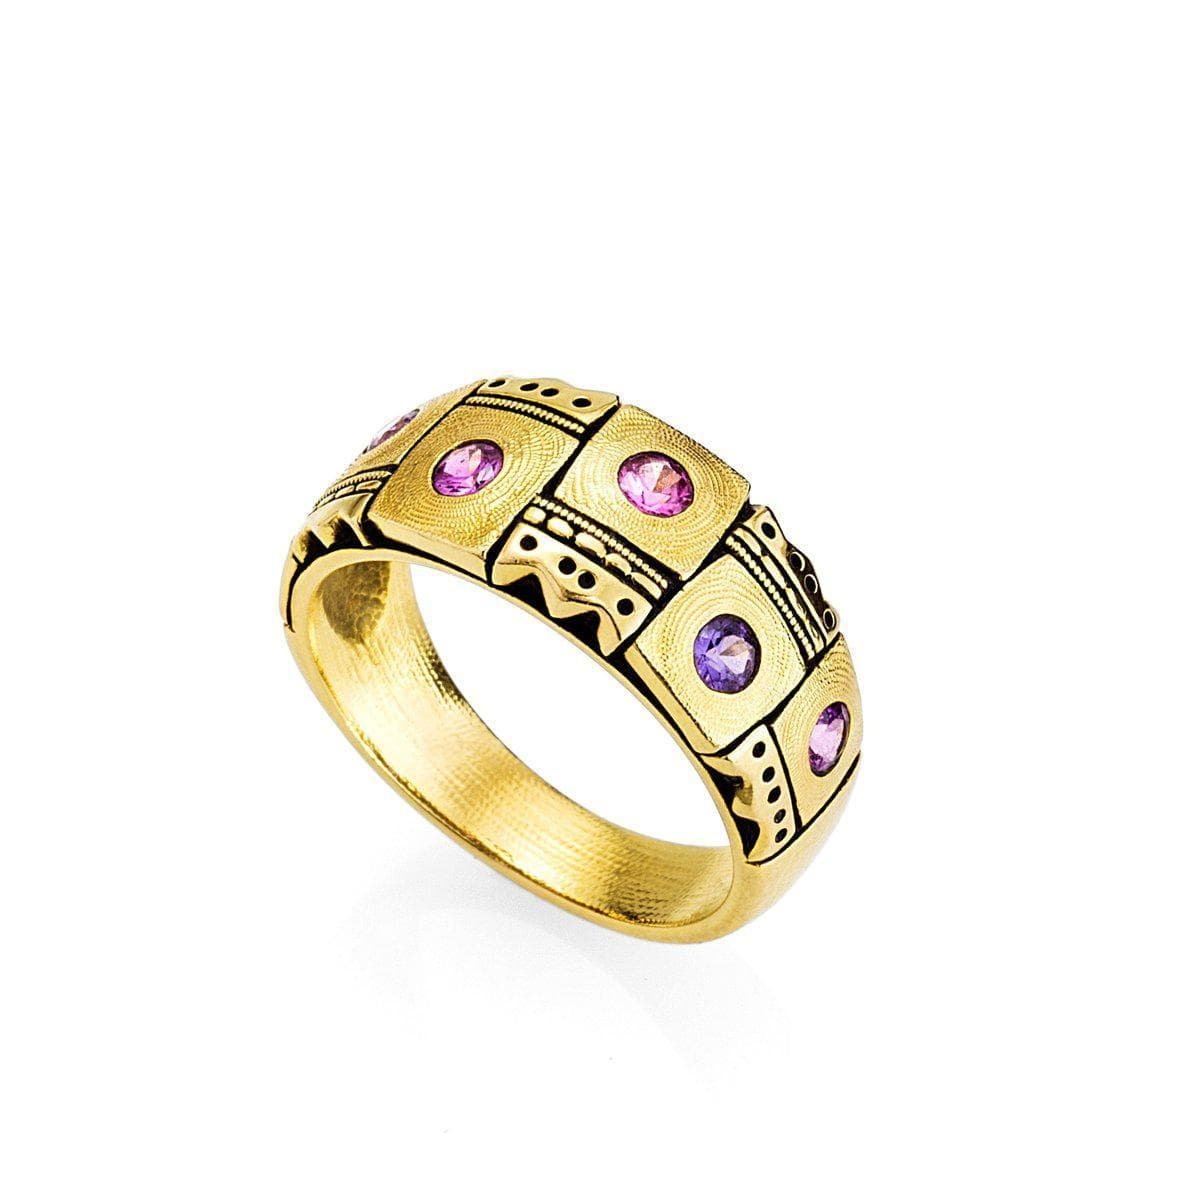 18K Crowned Heads Pink Purple Sapphire Band - R-159S-Alex Sepkus-Renee Taylor Gallery